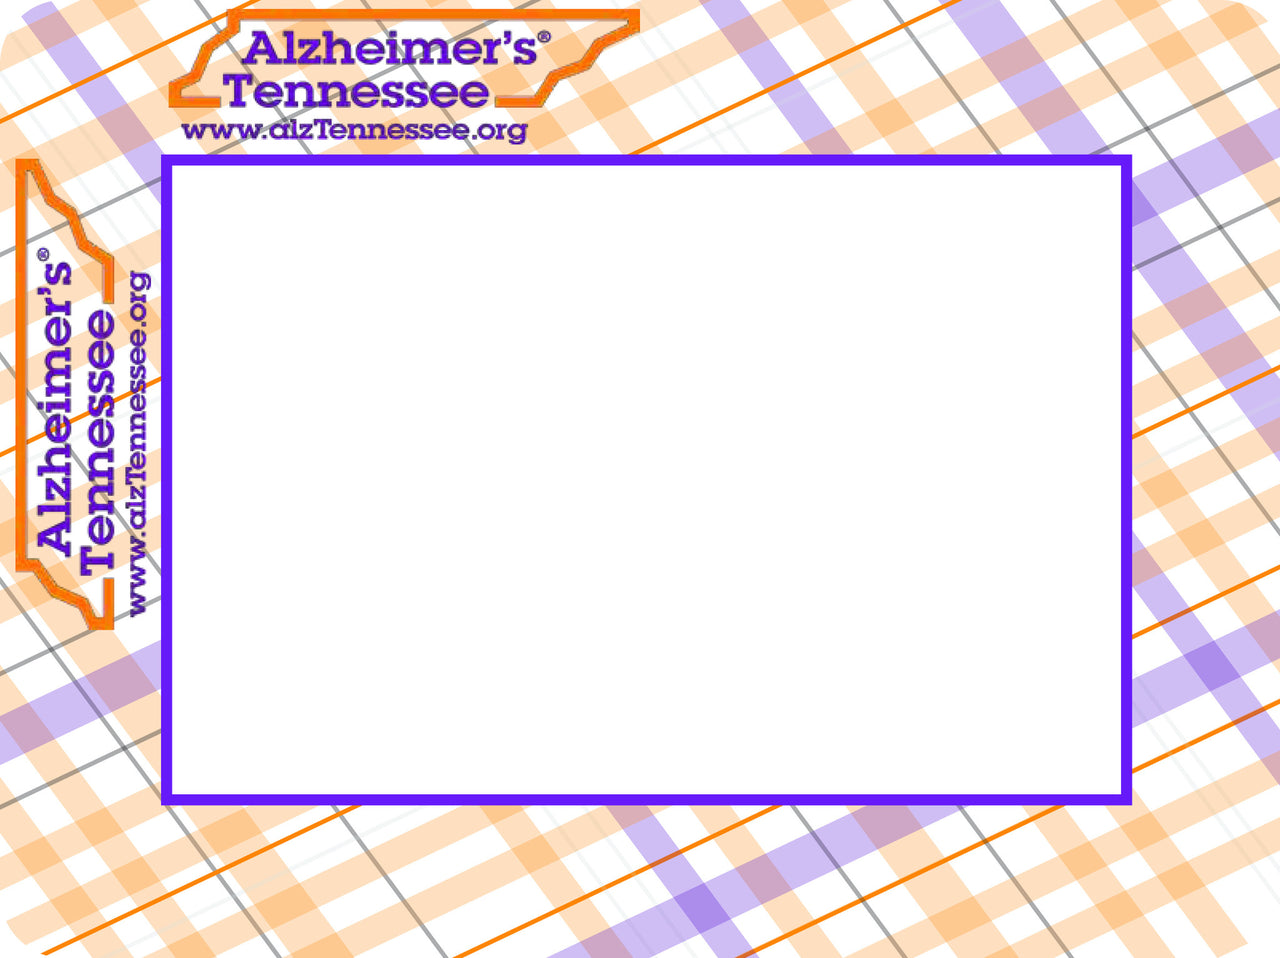 Custom Adhesive Frames for Fundraisers - Fodeez® Adhesive Display Frames / Dry Erase Boards  - 2